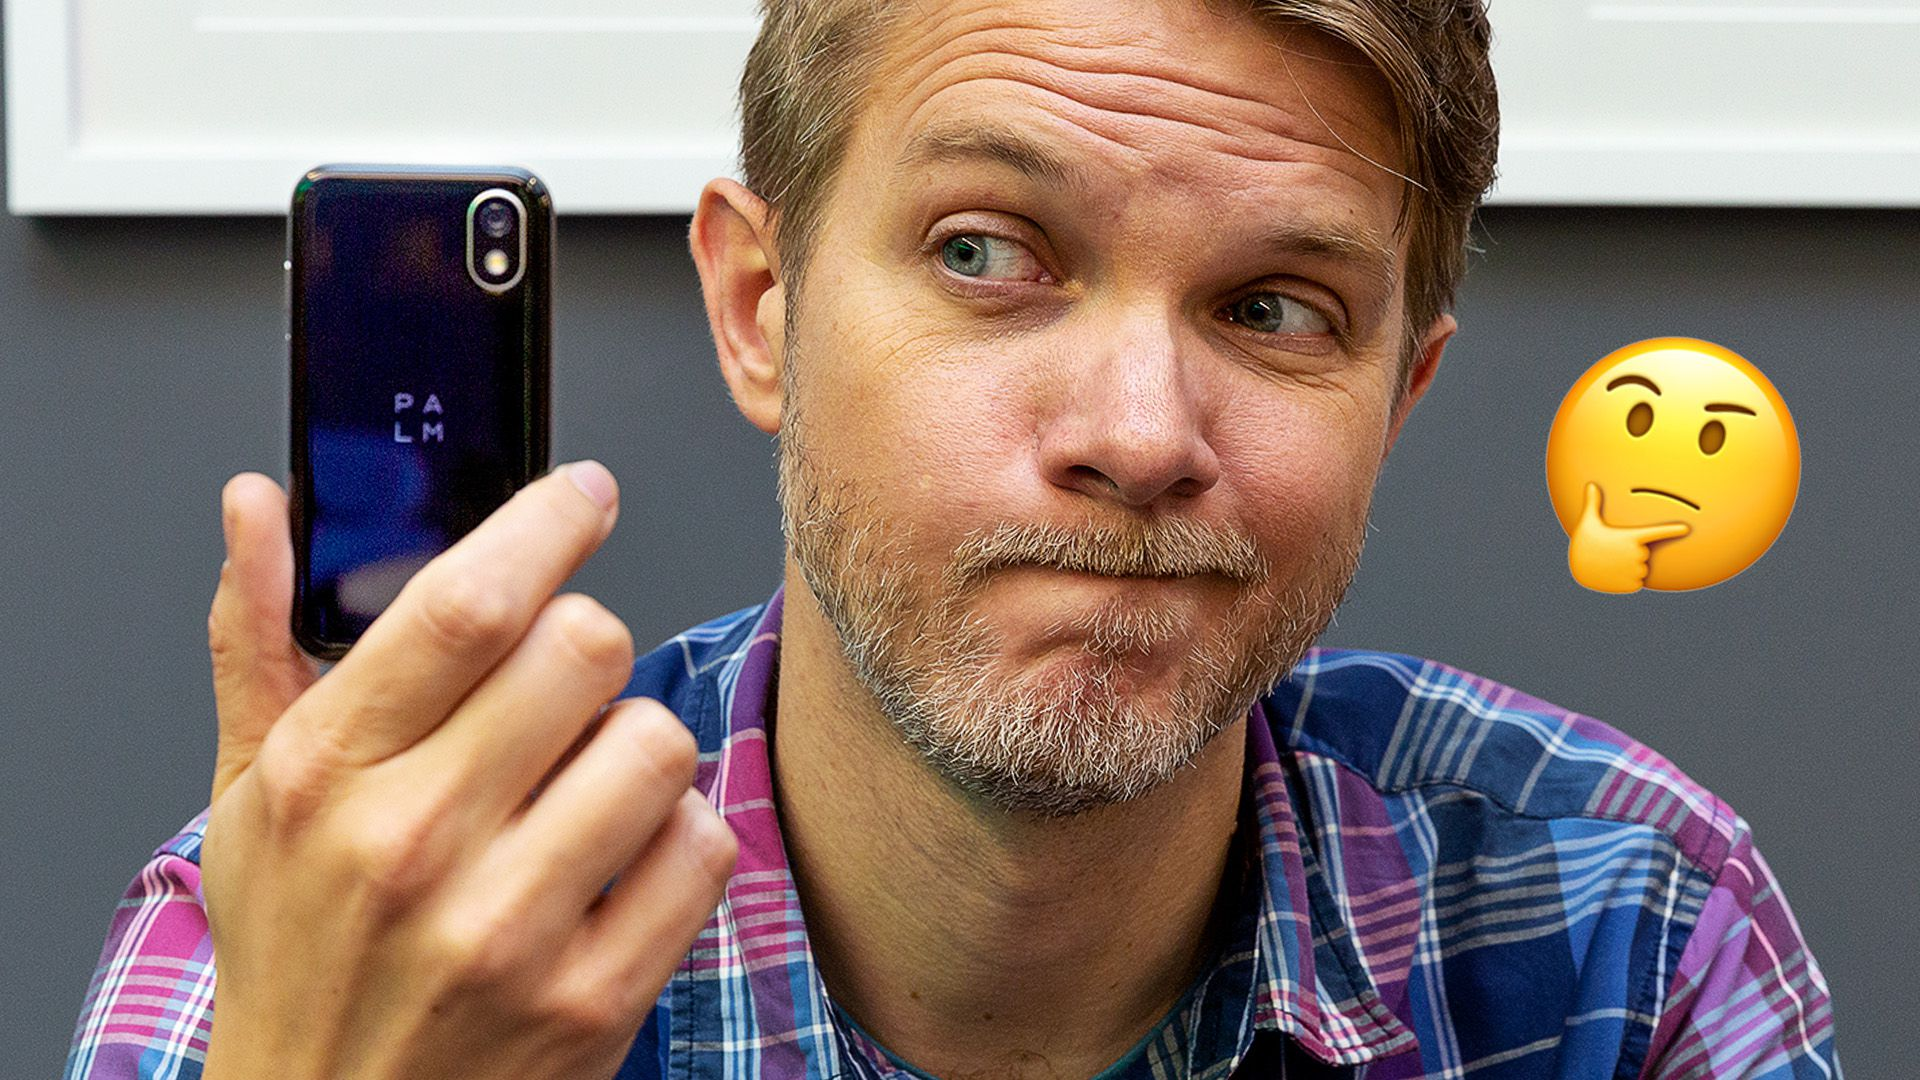 The new Palm is a tiny phone to keep you away from your phone - The